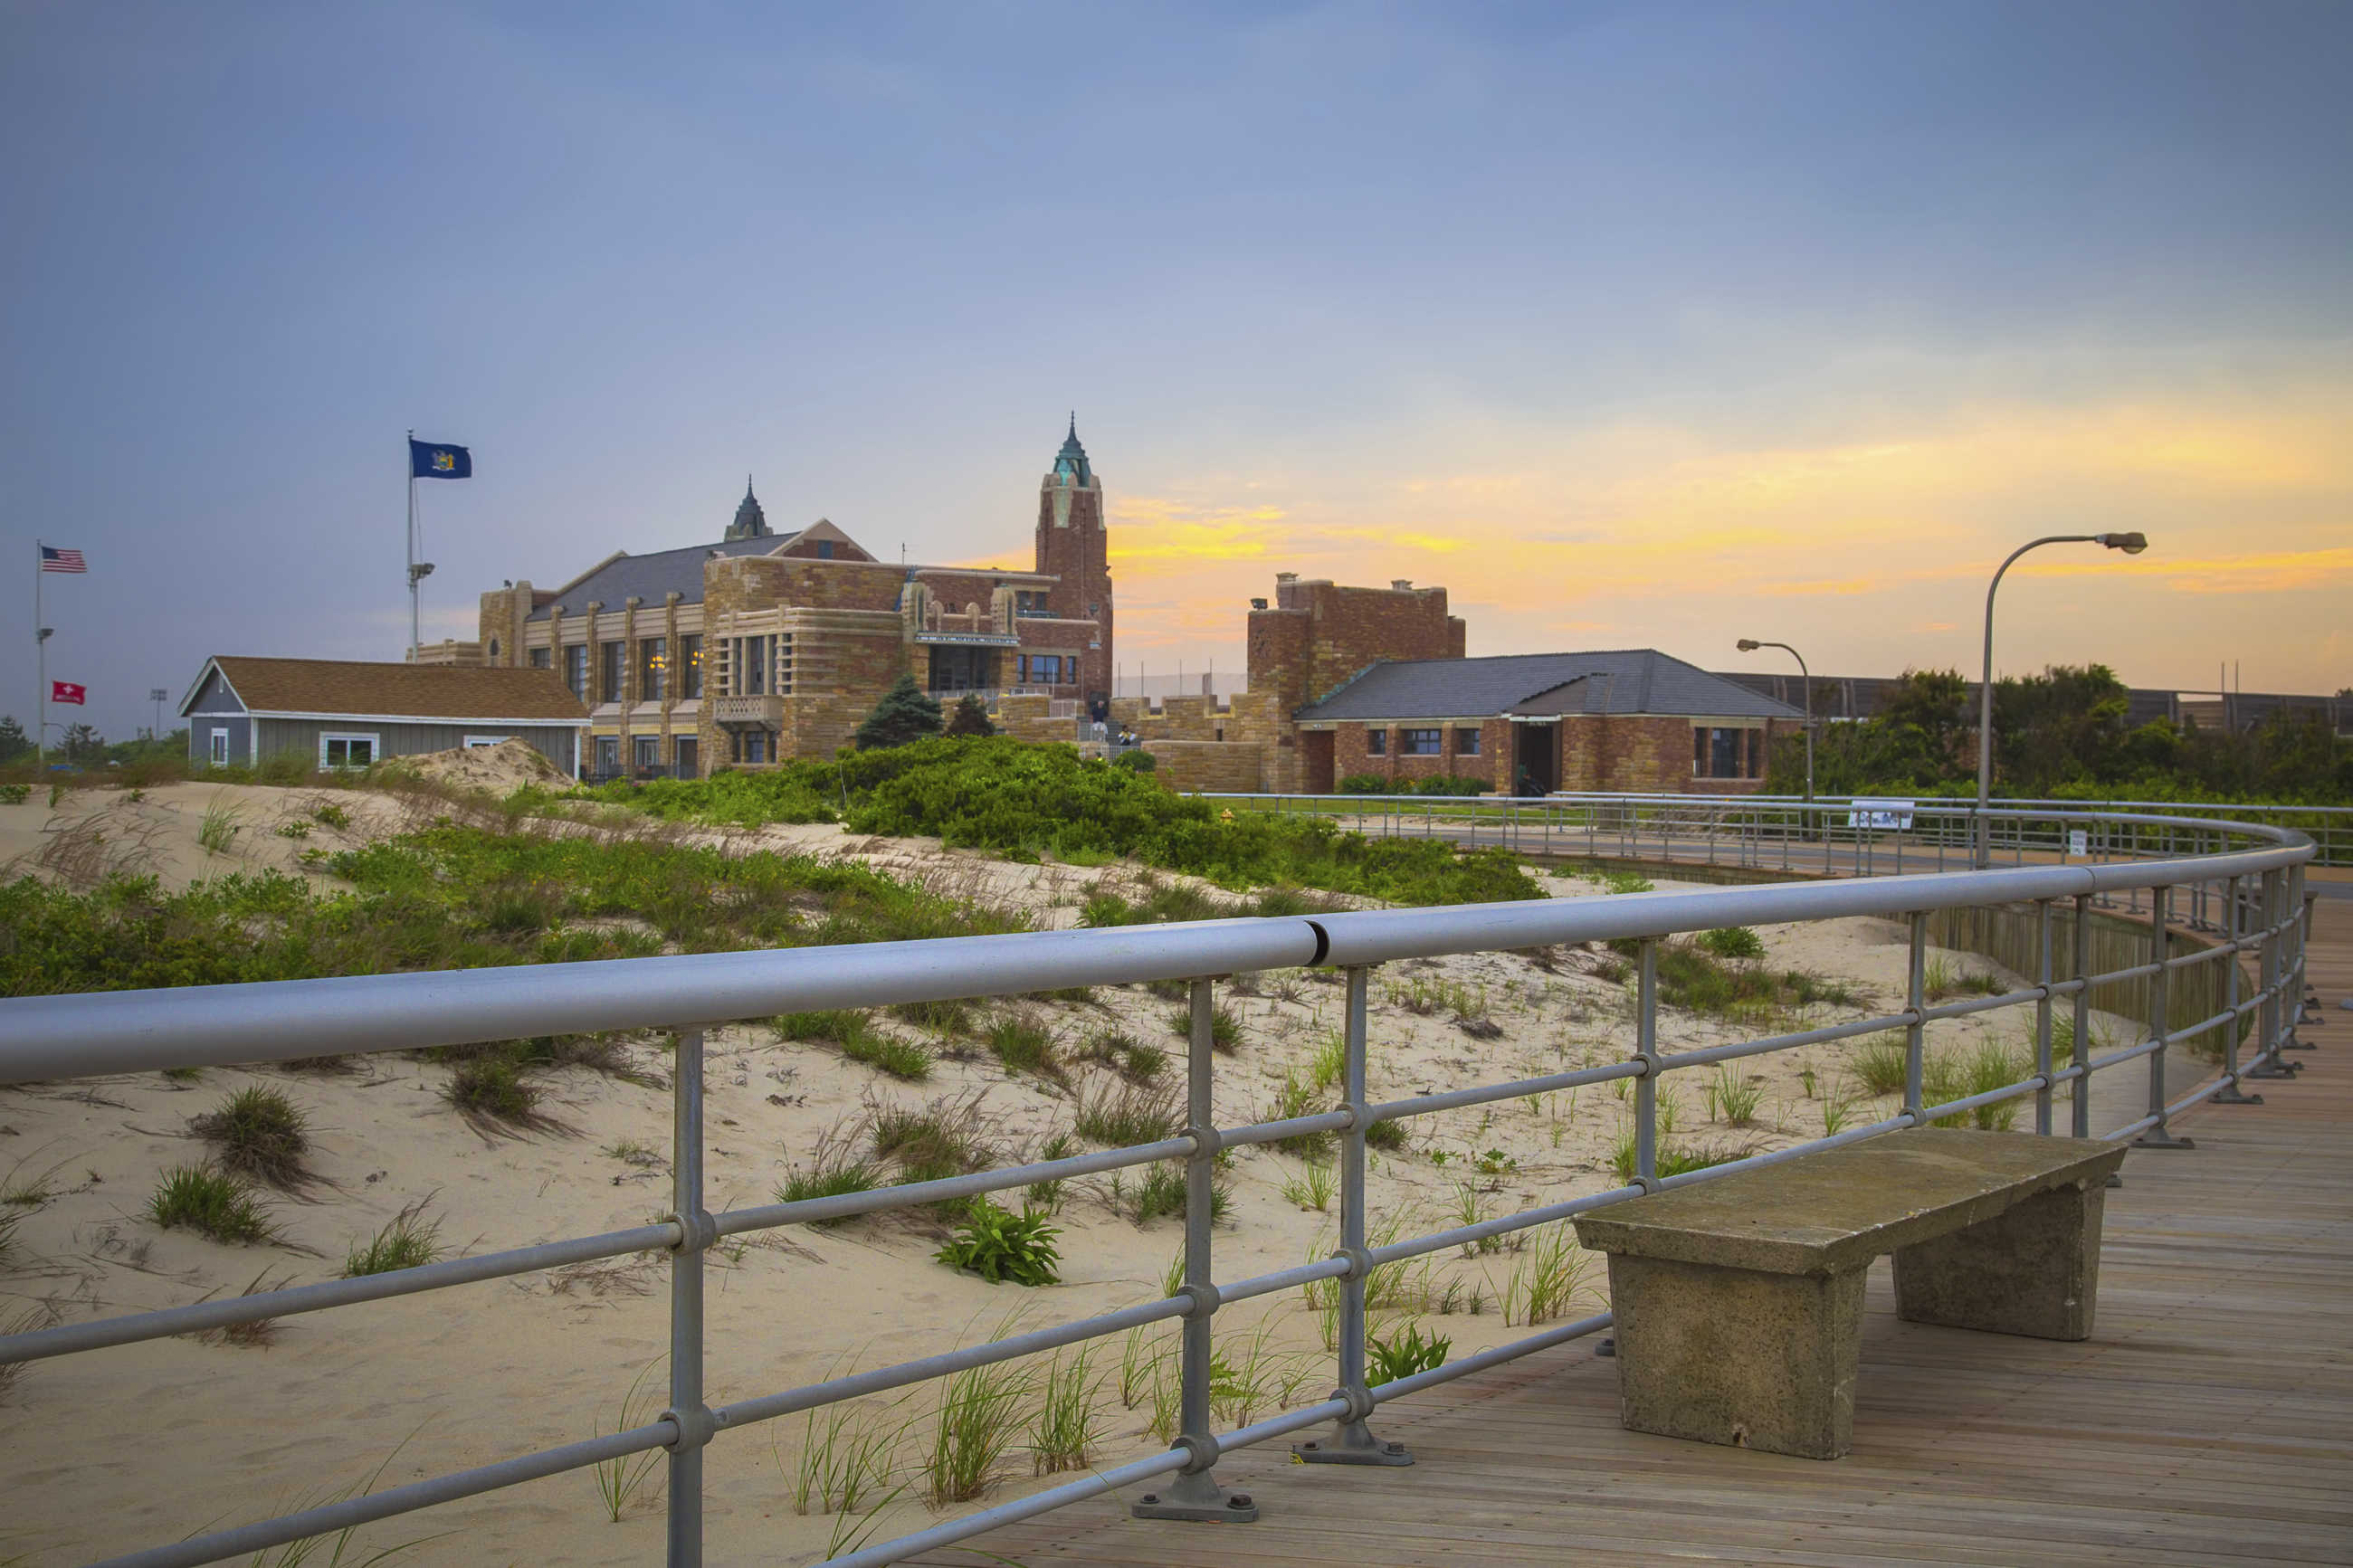 Sunset over boardwalk and bathhouse at historic Jones Beach State Park. This Long Island landmark commissioned by Robert Moses opened to the public in 1929.